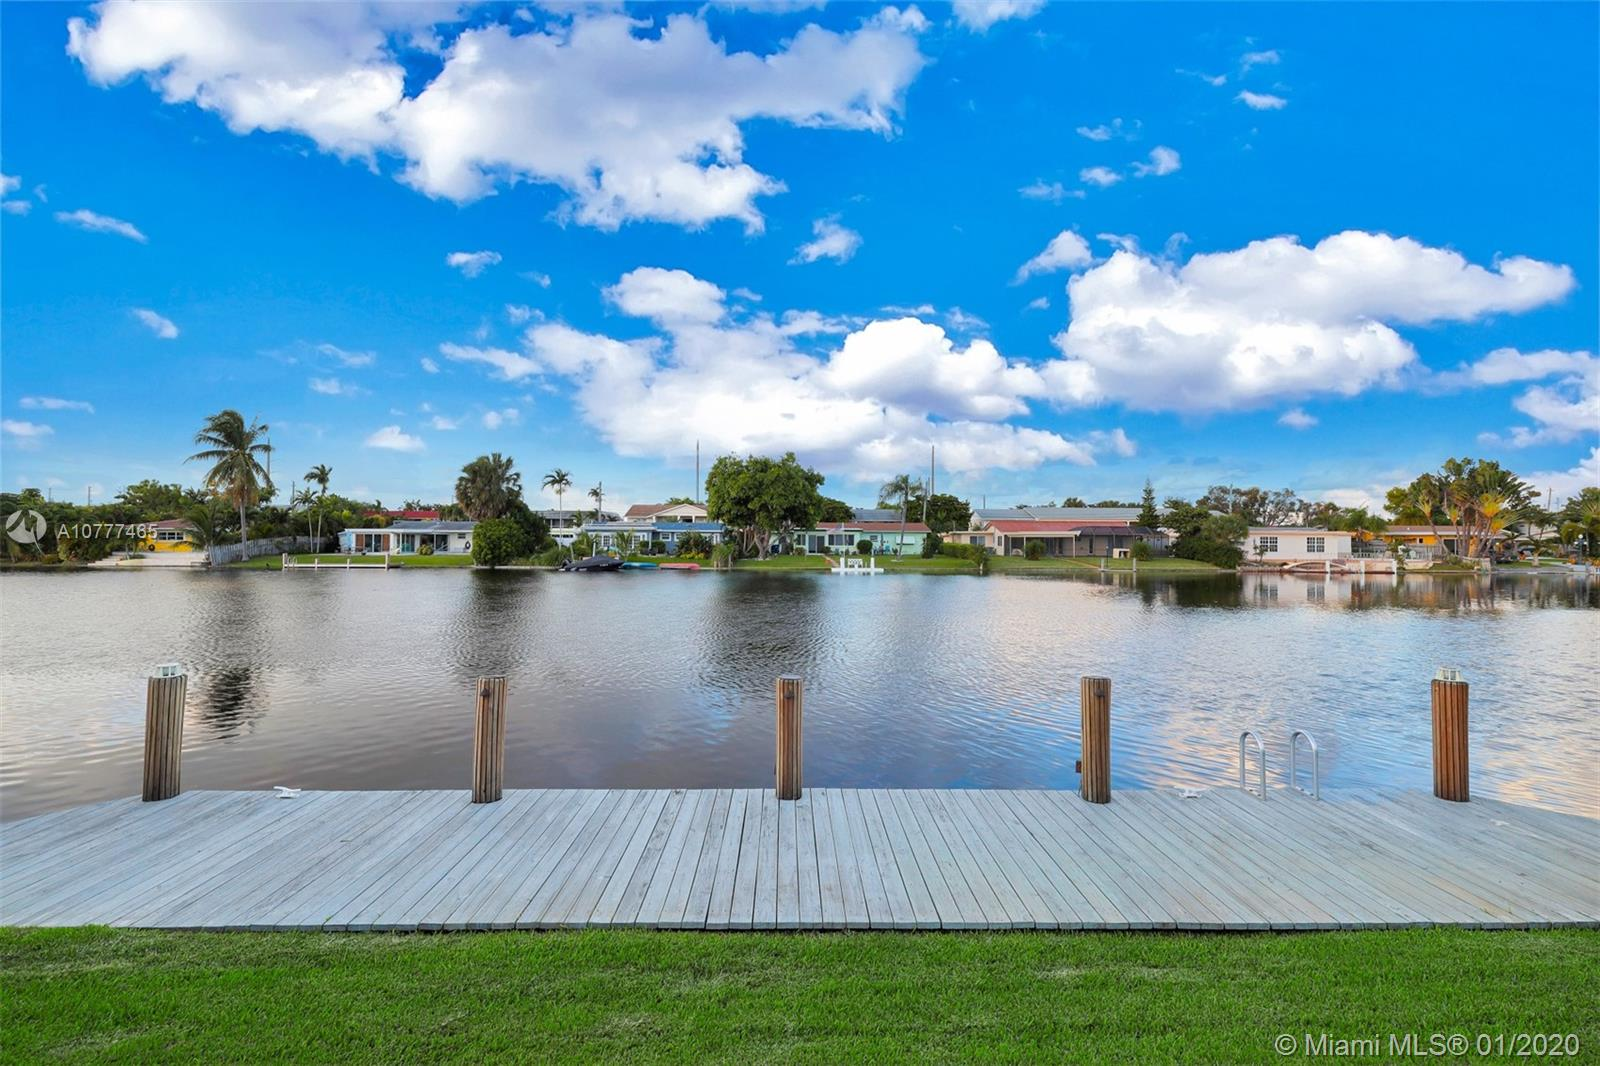 Pride of ownership shows on this immaculate 4 bedroom waterfront home located on the exclusive Jenada Isle of Wilton Manors. Surrounded by 200' wide middle river canal. This home is a must see, beautifully remodeled and views of the water from nearly every window in the home, with large bedrooms, remodeled kitchen that sits in the center of the home with a view of the water and tons of natural light..Impact windows and doors, 2 year old AC, NEW 50' dock and a backyard with sunsets to die for.. Lighted patio, sailboat style pillars and outdoor speakers . Set up an appointment to see today!